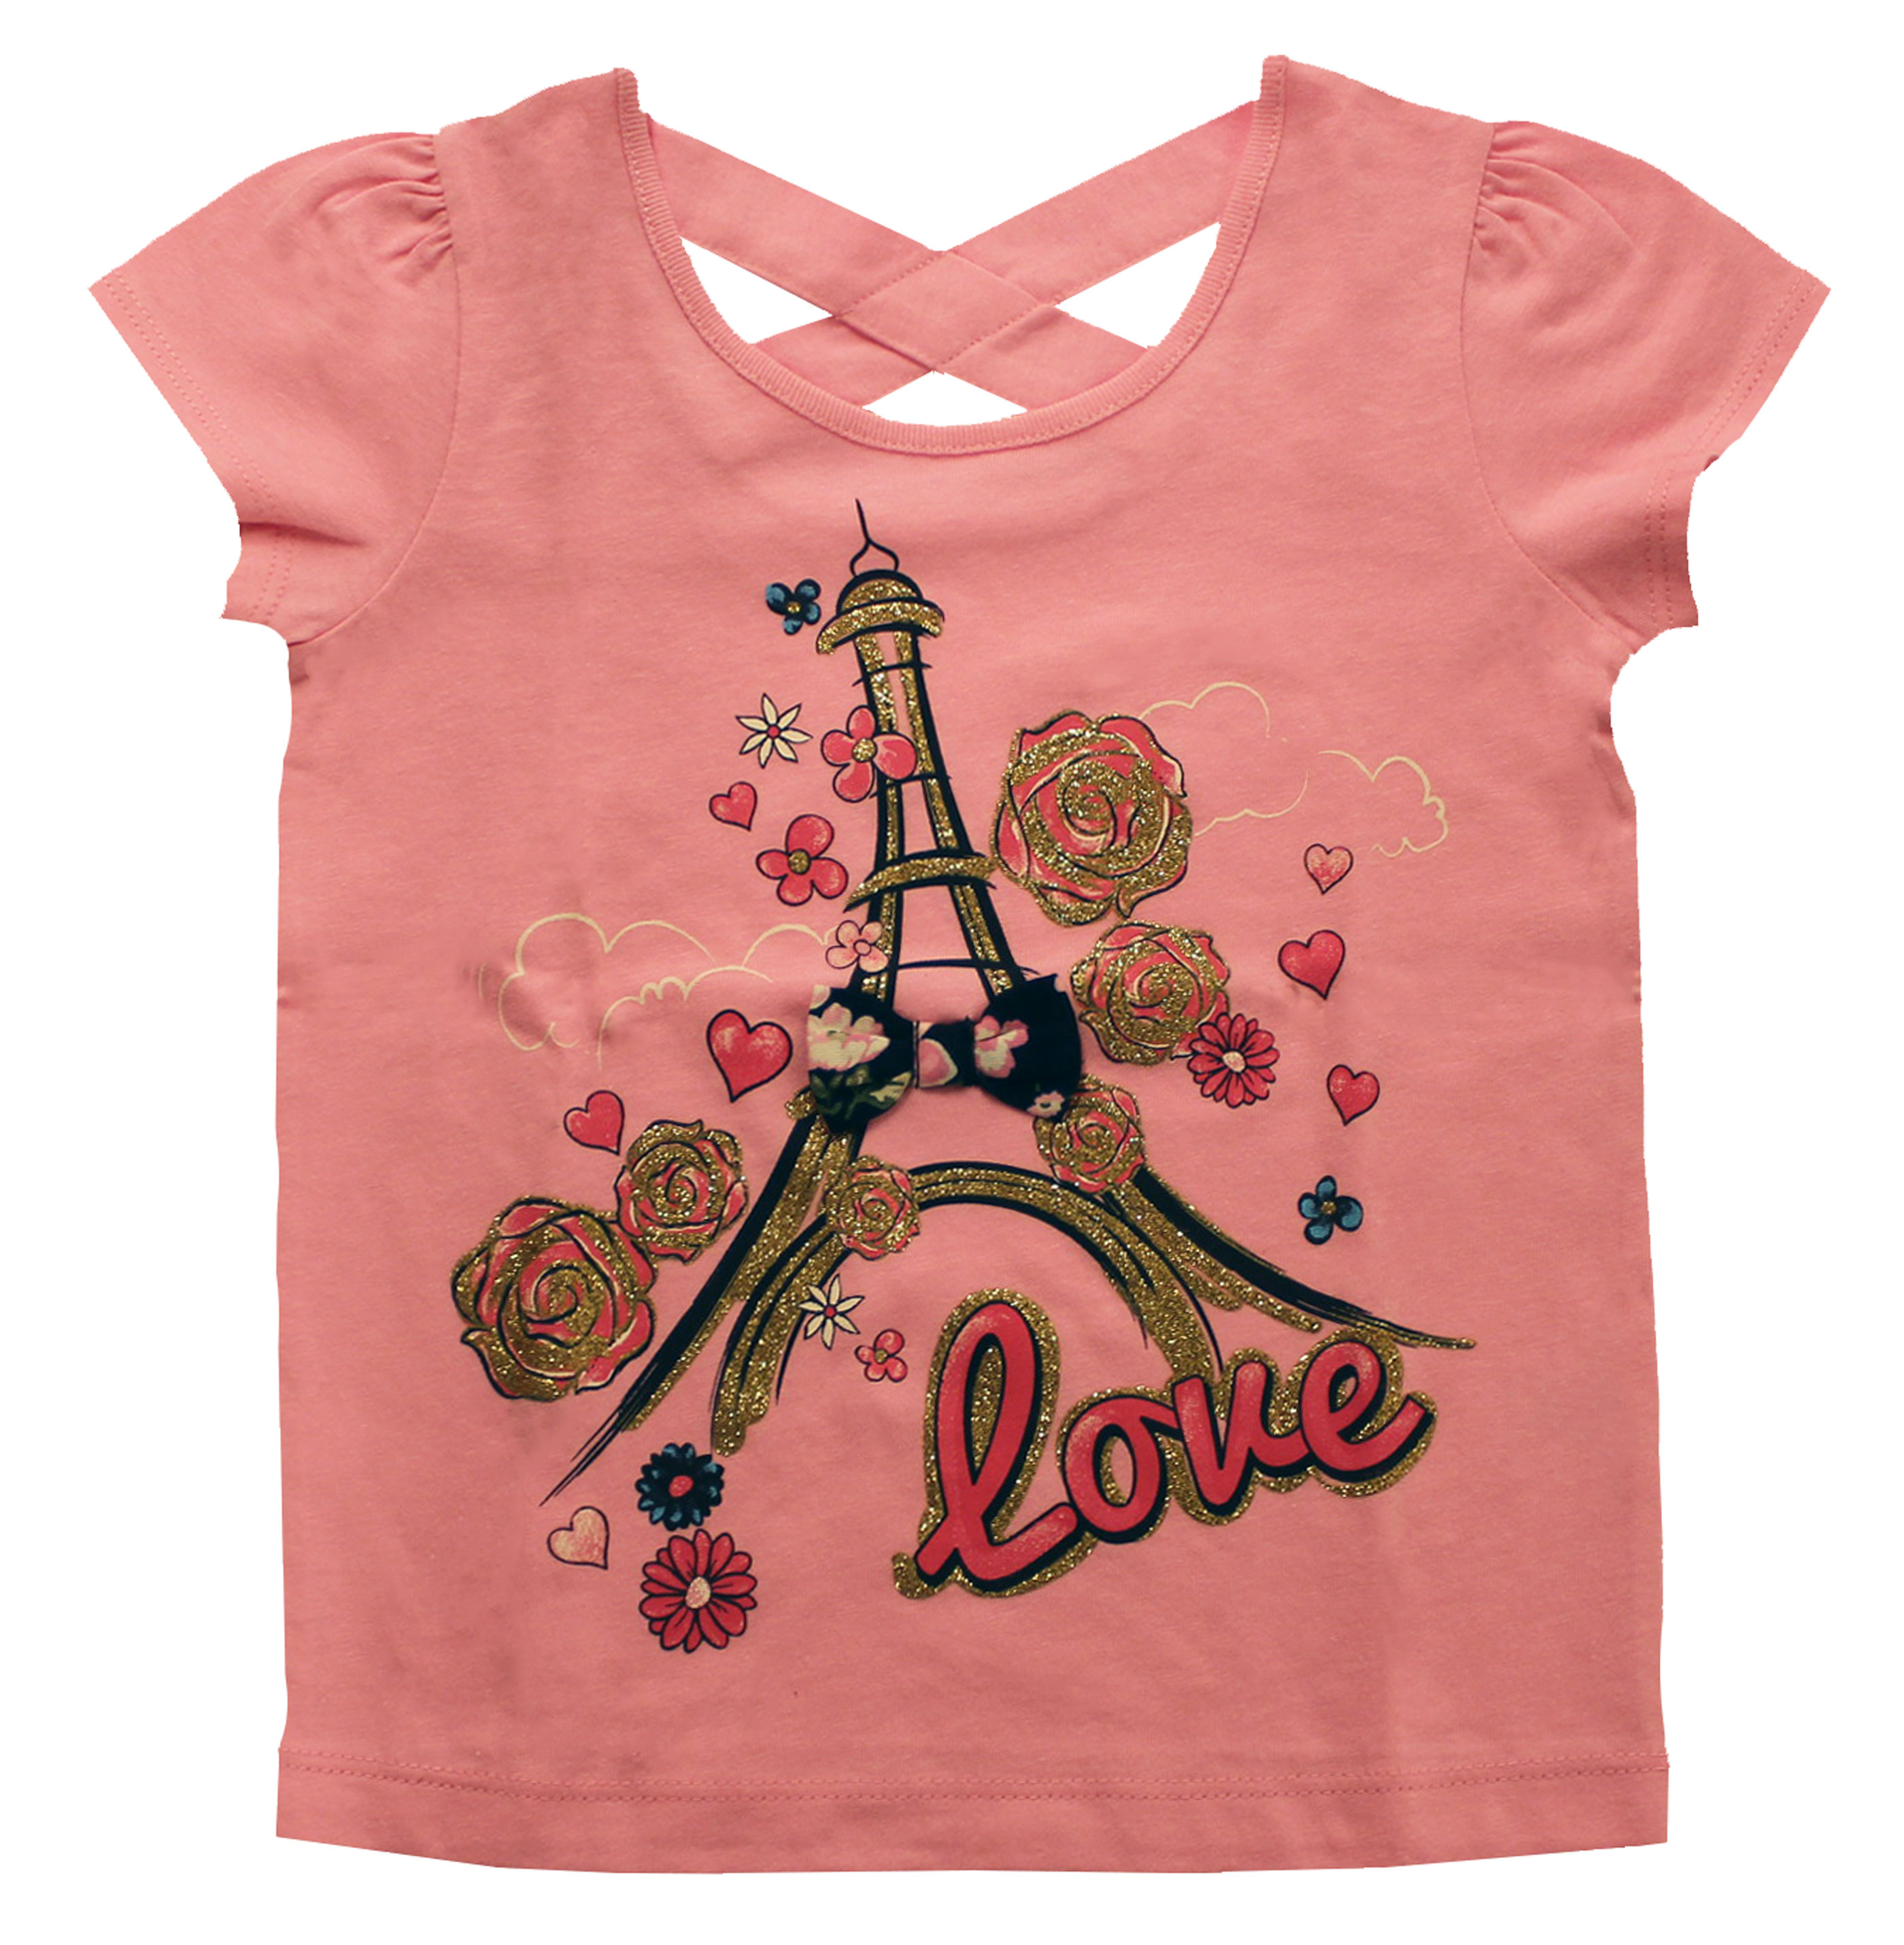 Toddler Girl Graphic Tee